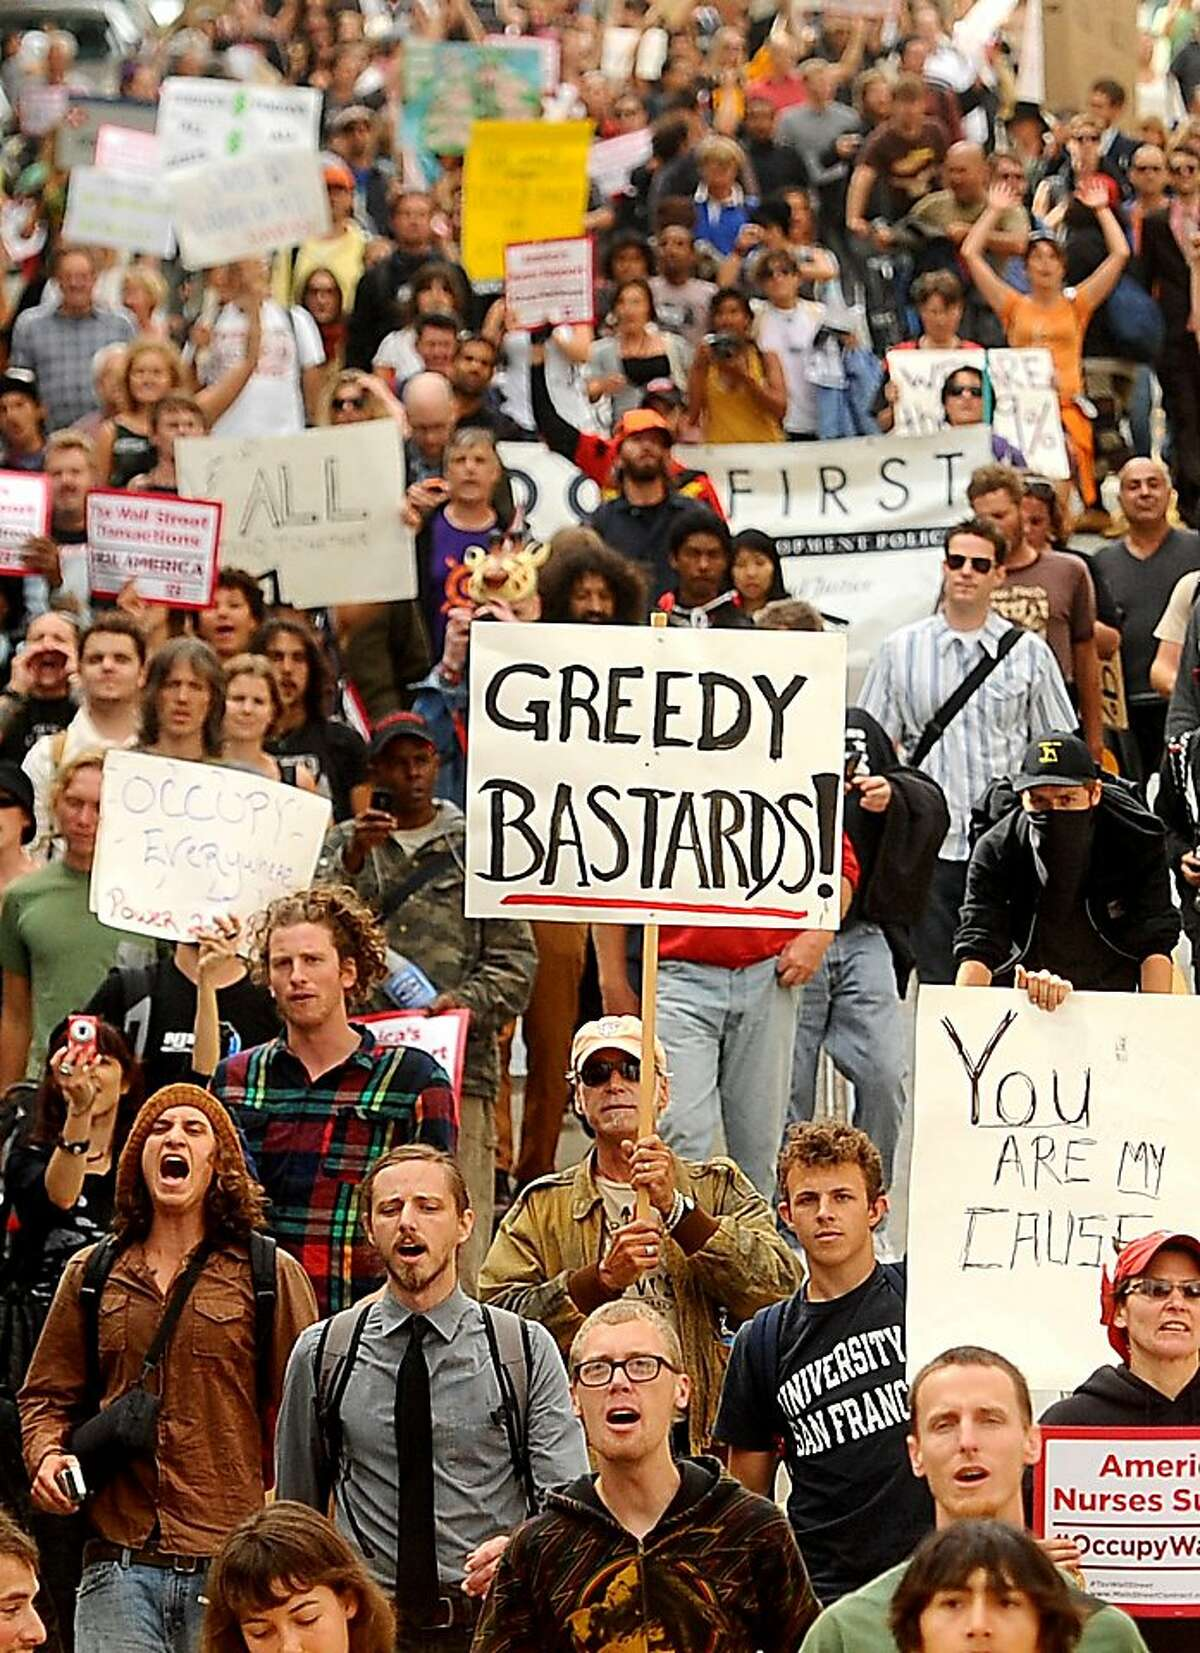 Protesters march down California St. during an OccupySF rally on Wednesday, Oct. 5, 2011, in San Francisco. The crowd numbered about 800 at its peak.